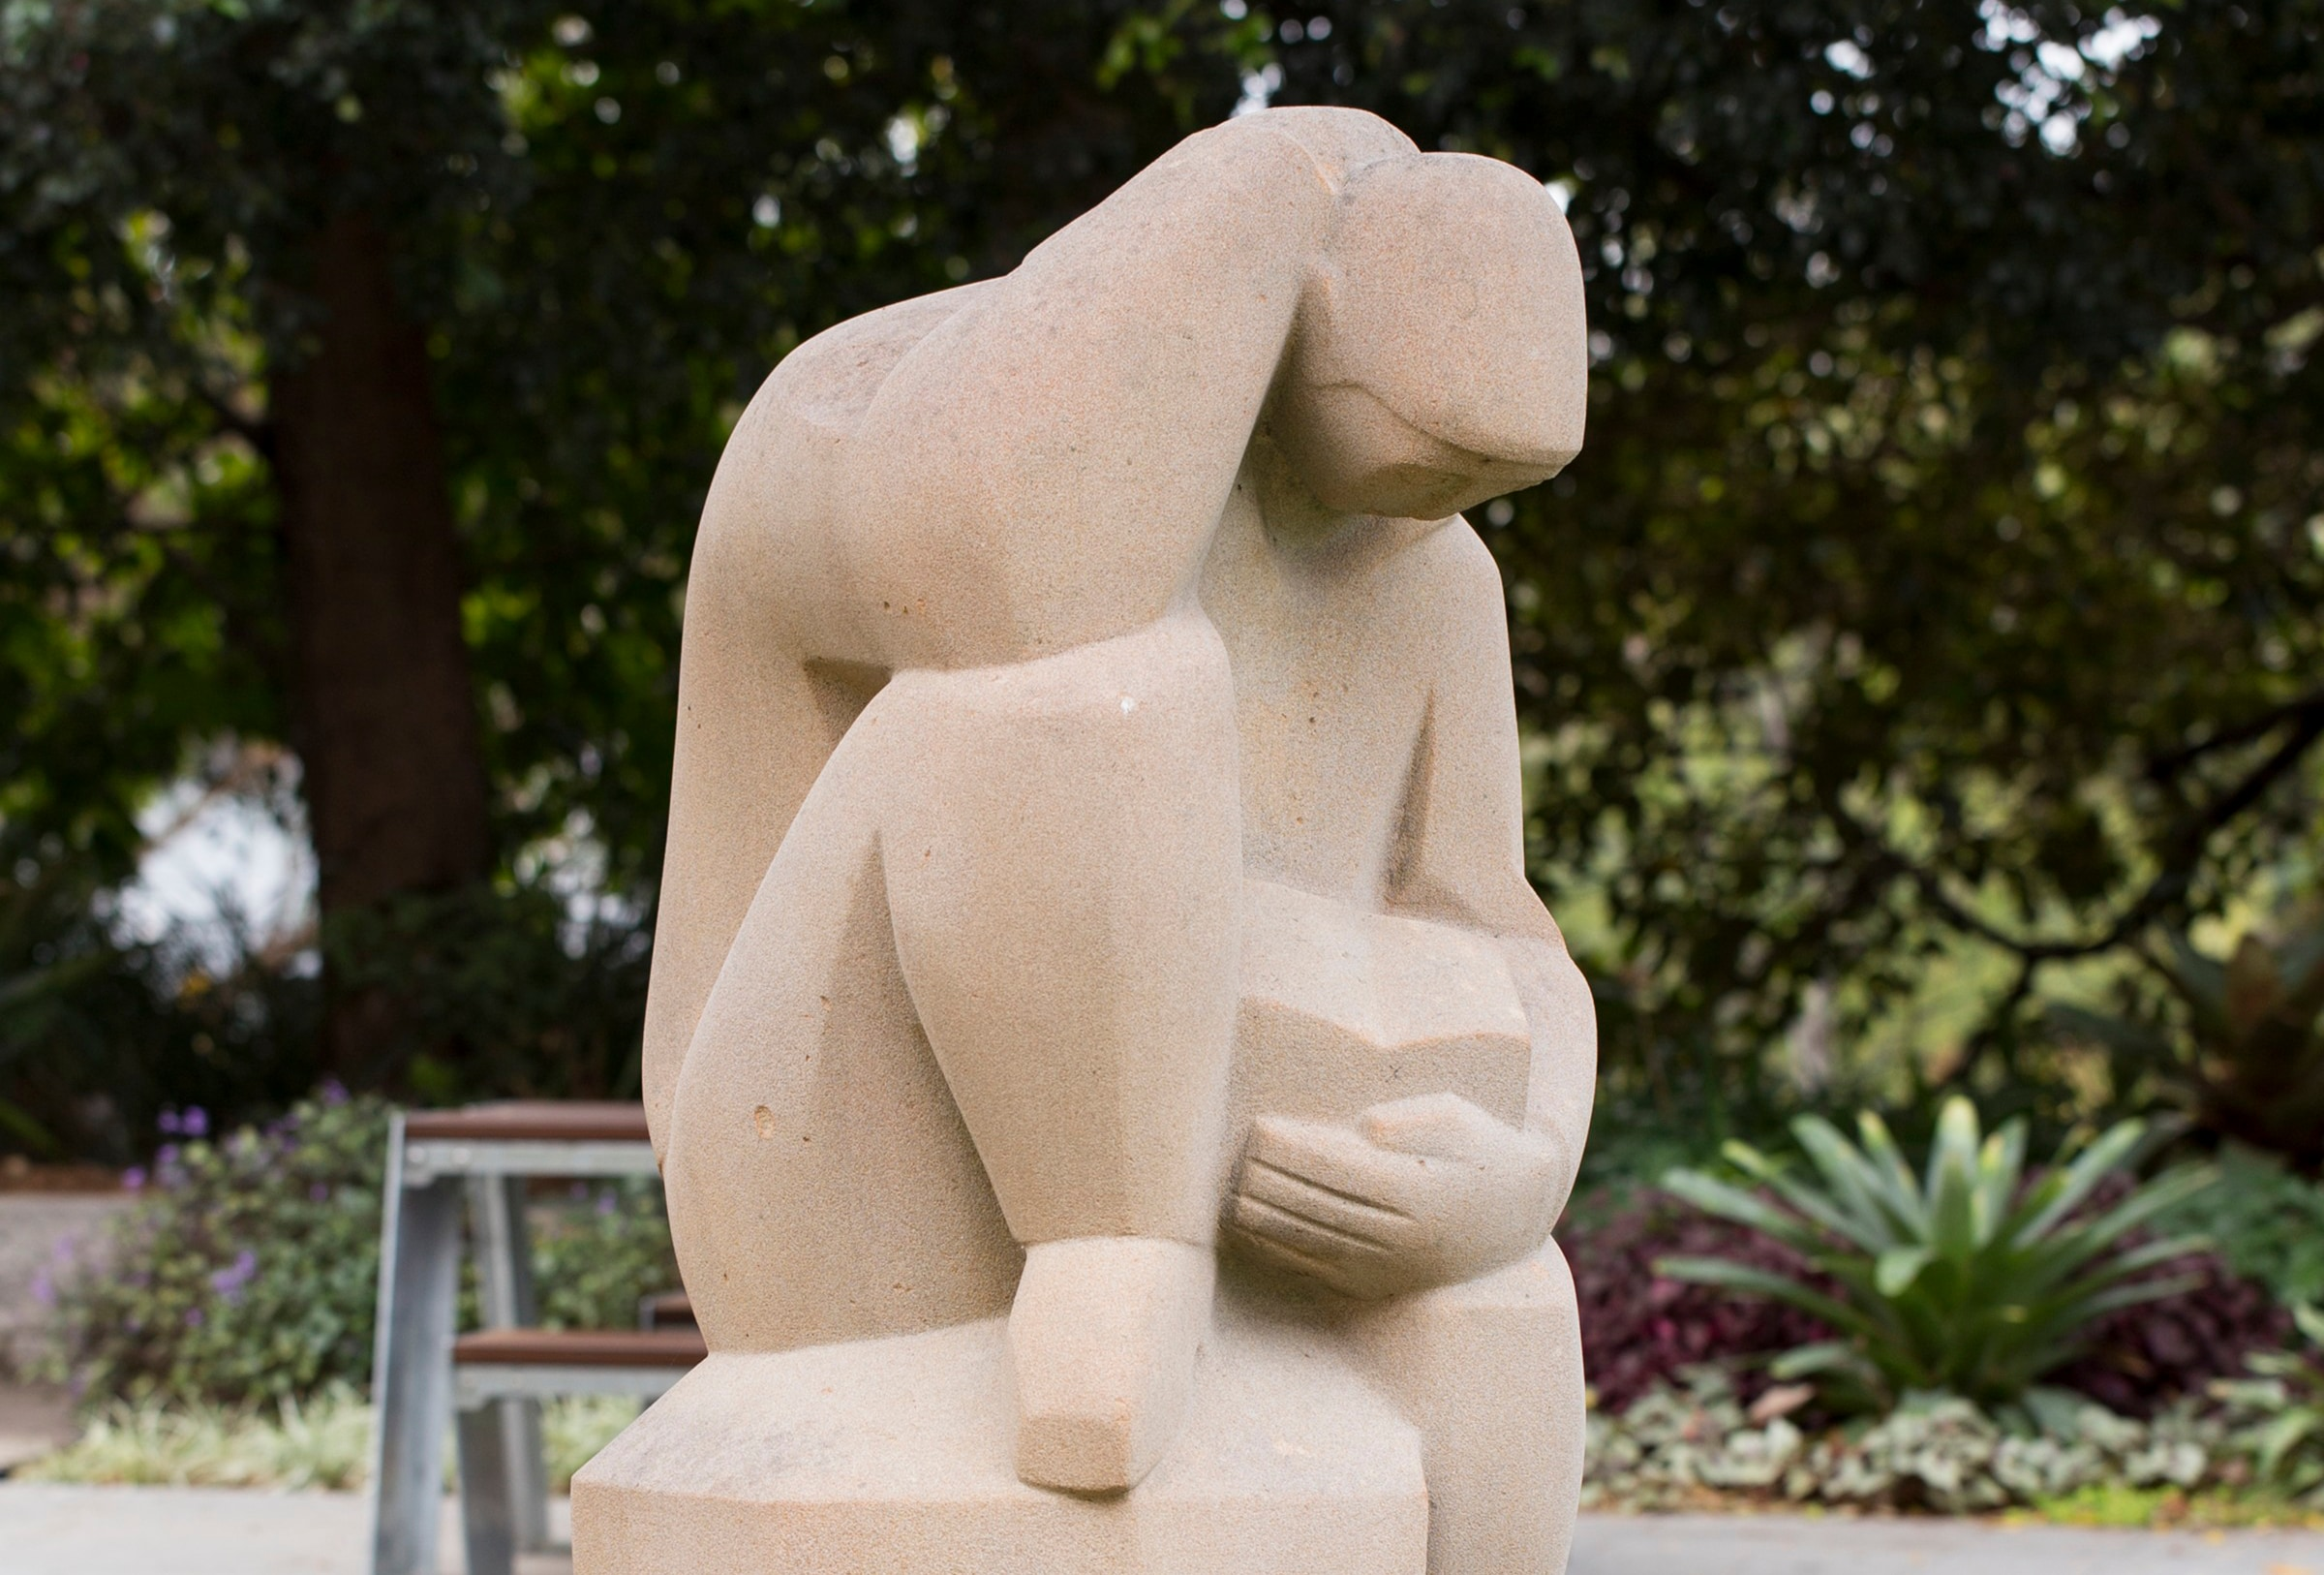 Tom Bass' monumental Modernist sculpture of a human figure